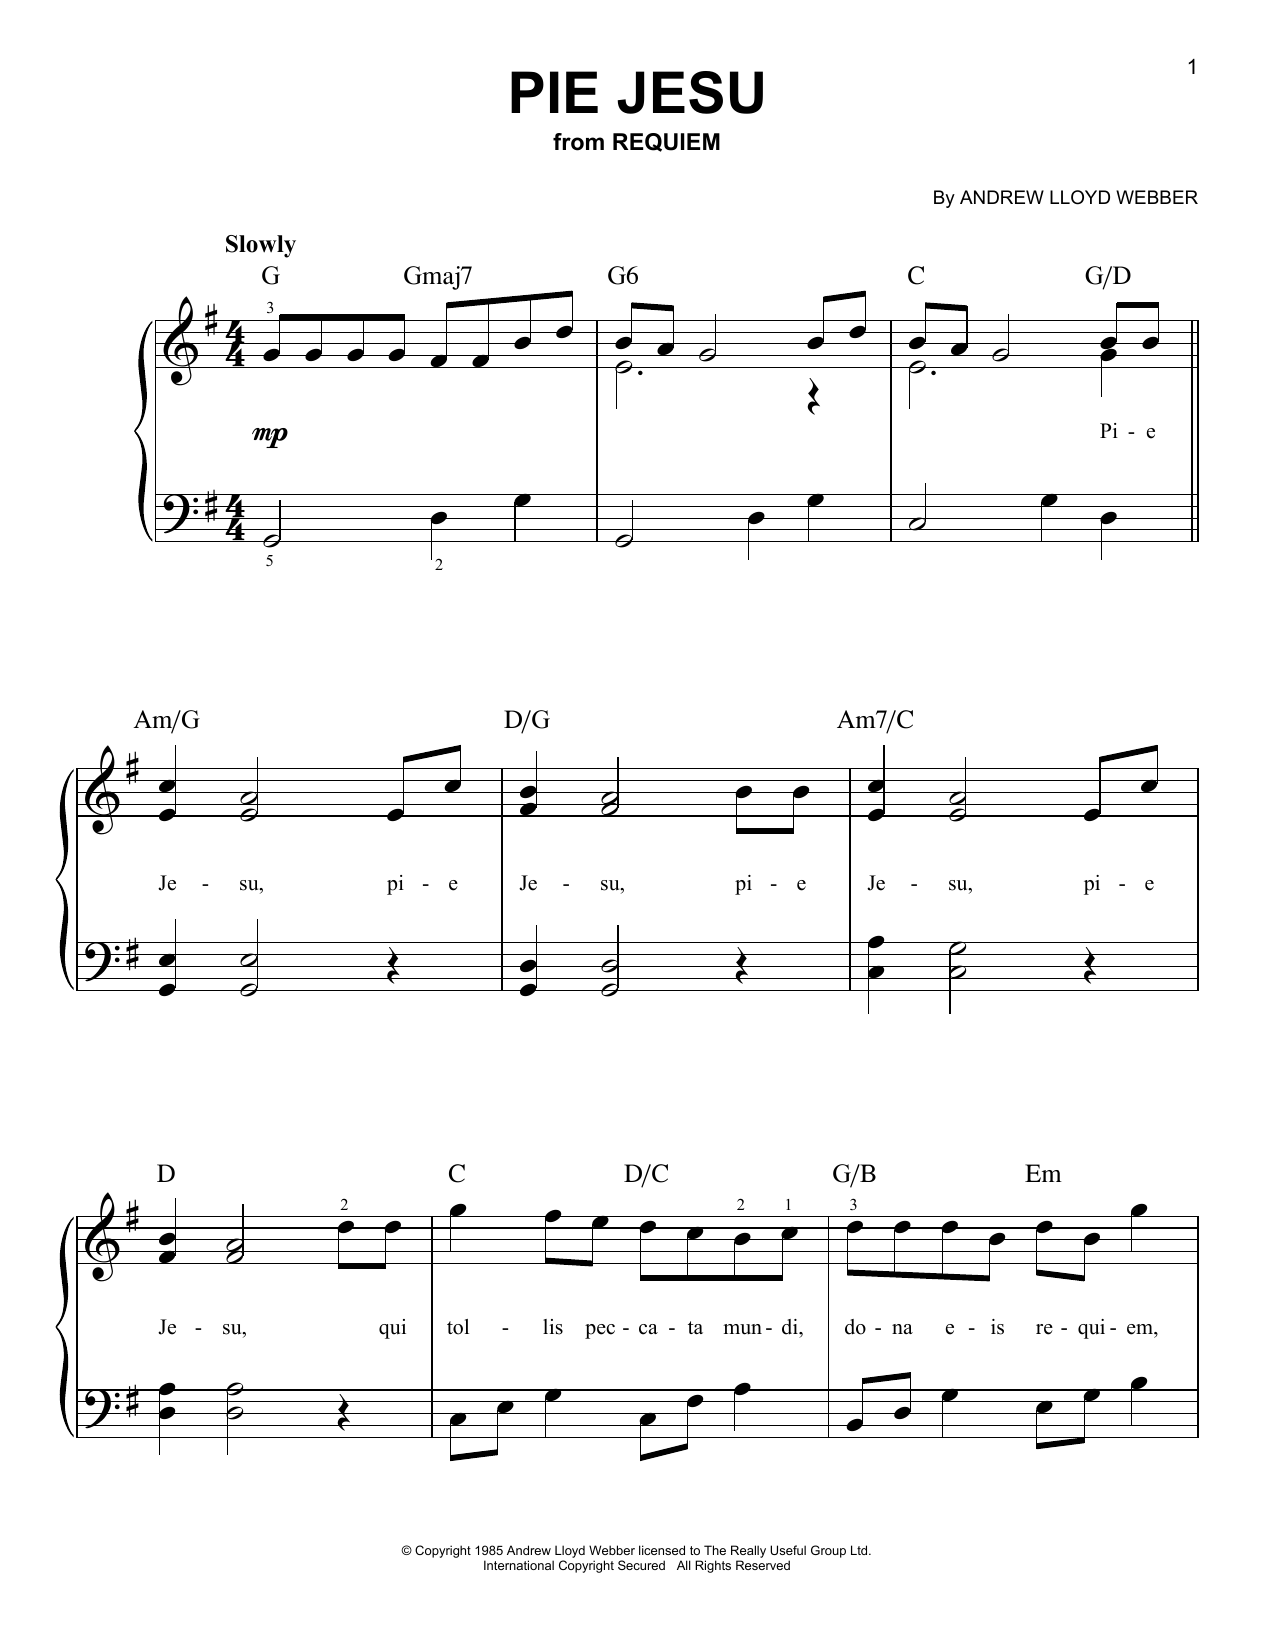 Andrew Lloyd Webber Pie Jesu (from Requiem) sheet music notes and chords. Download Printable PDF.